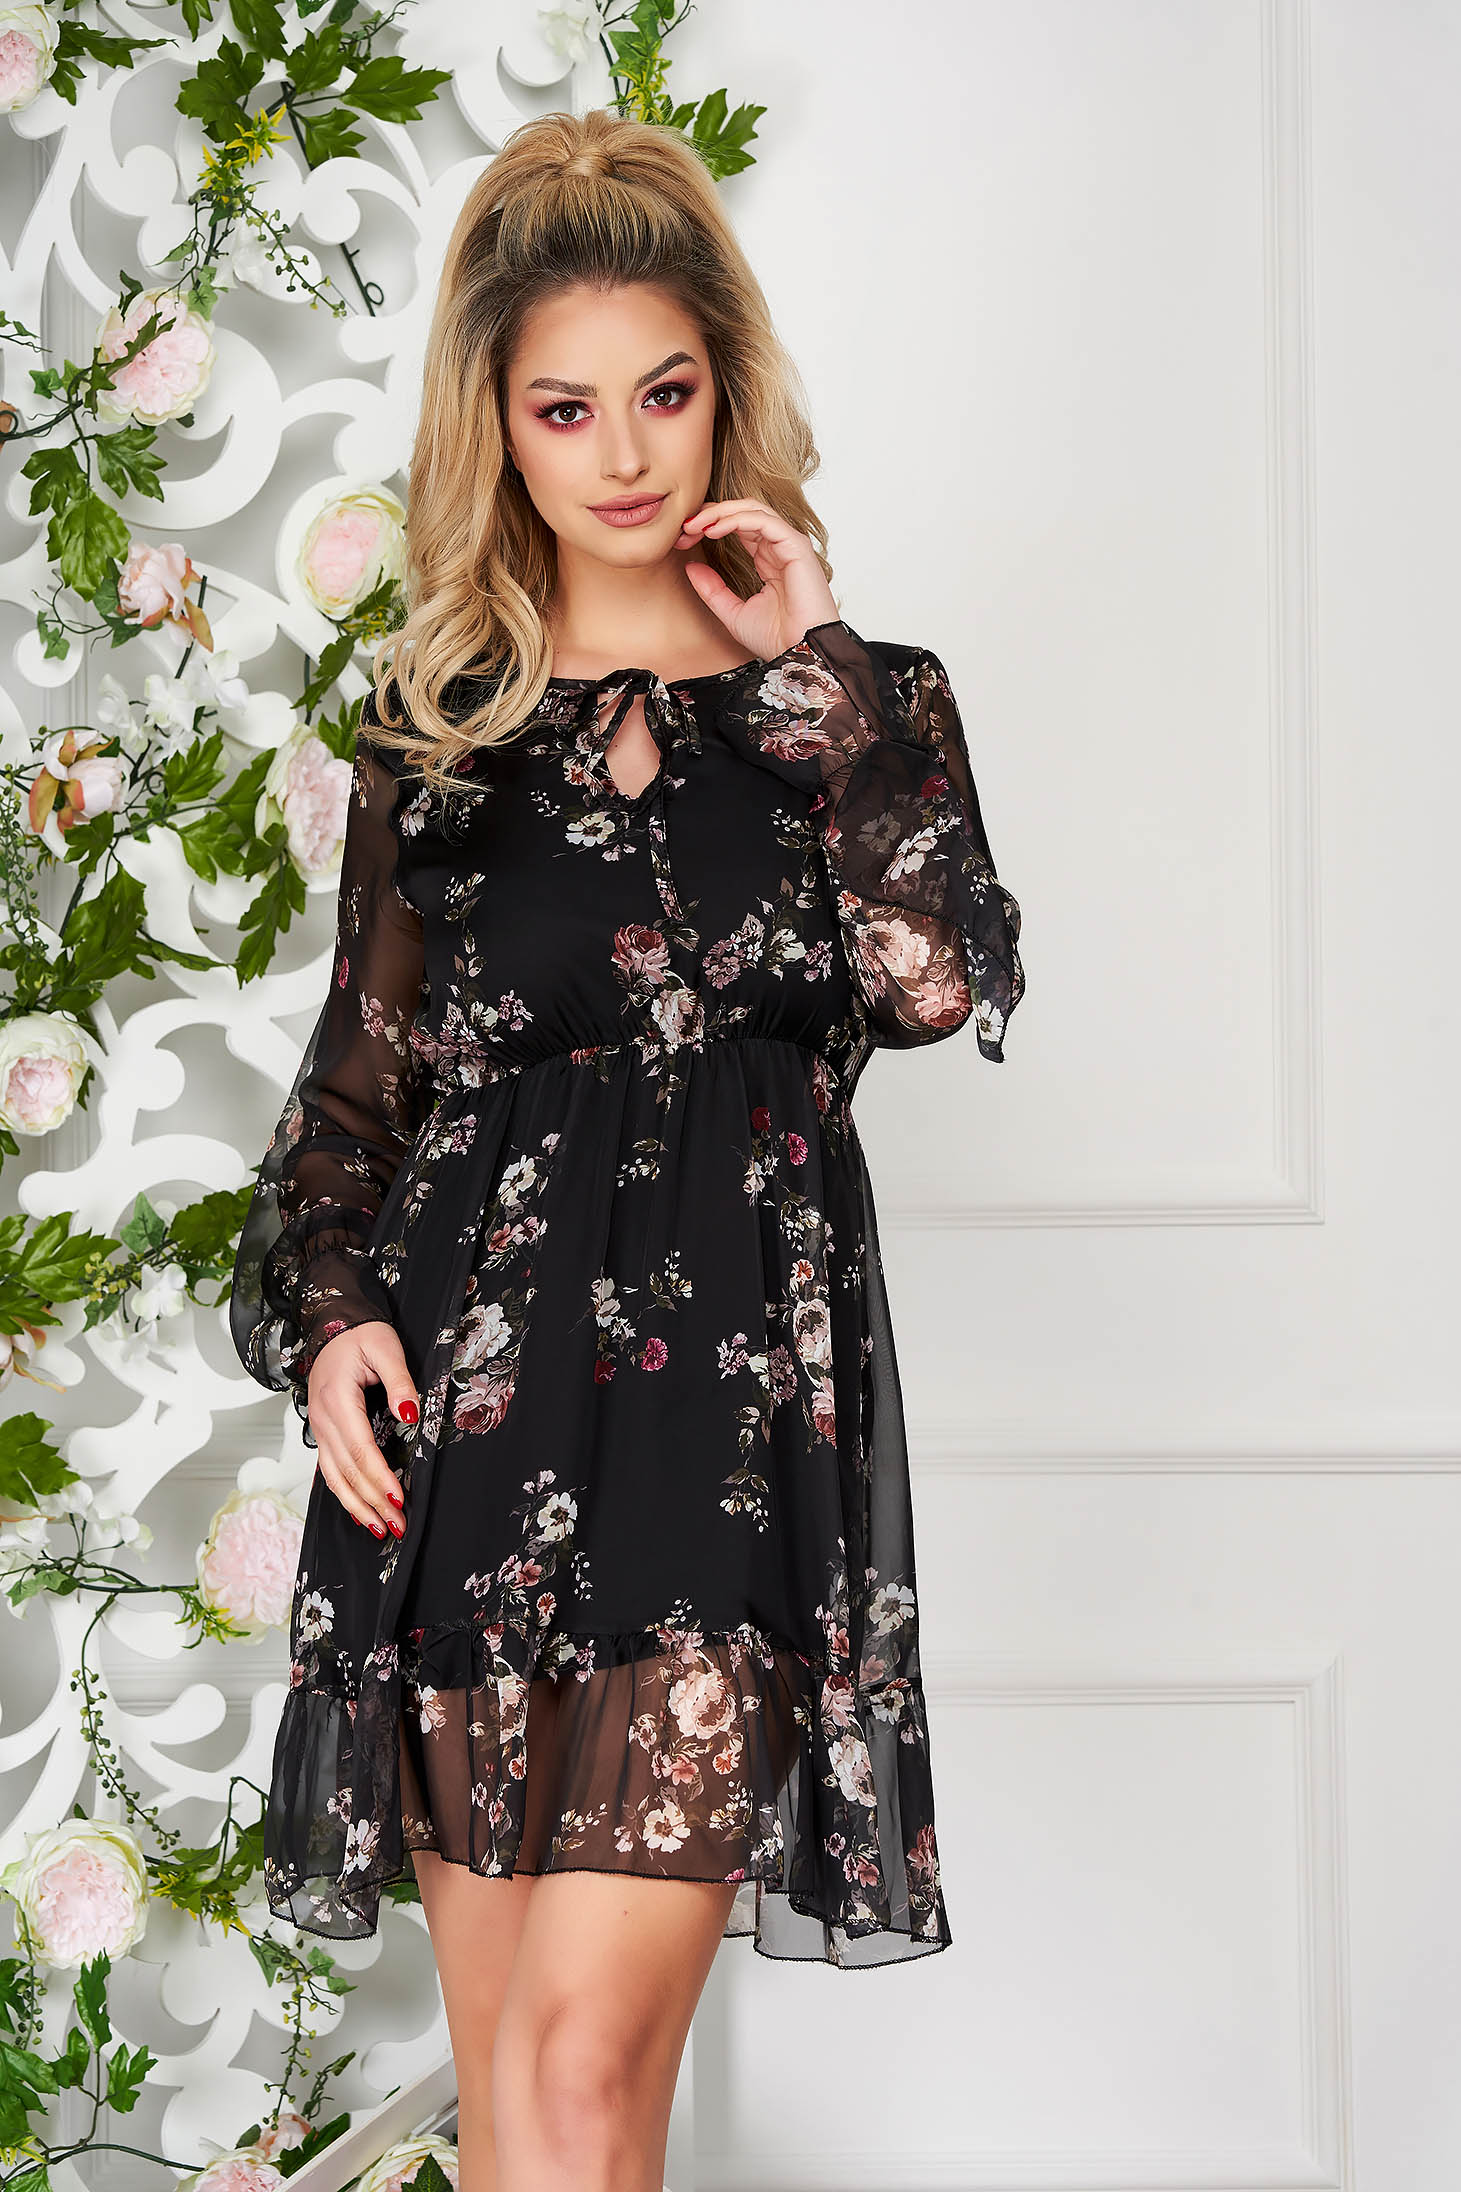 Black dress with elastic waist with ruffled sleeves daily short cut from veil fabric